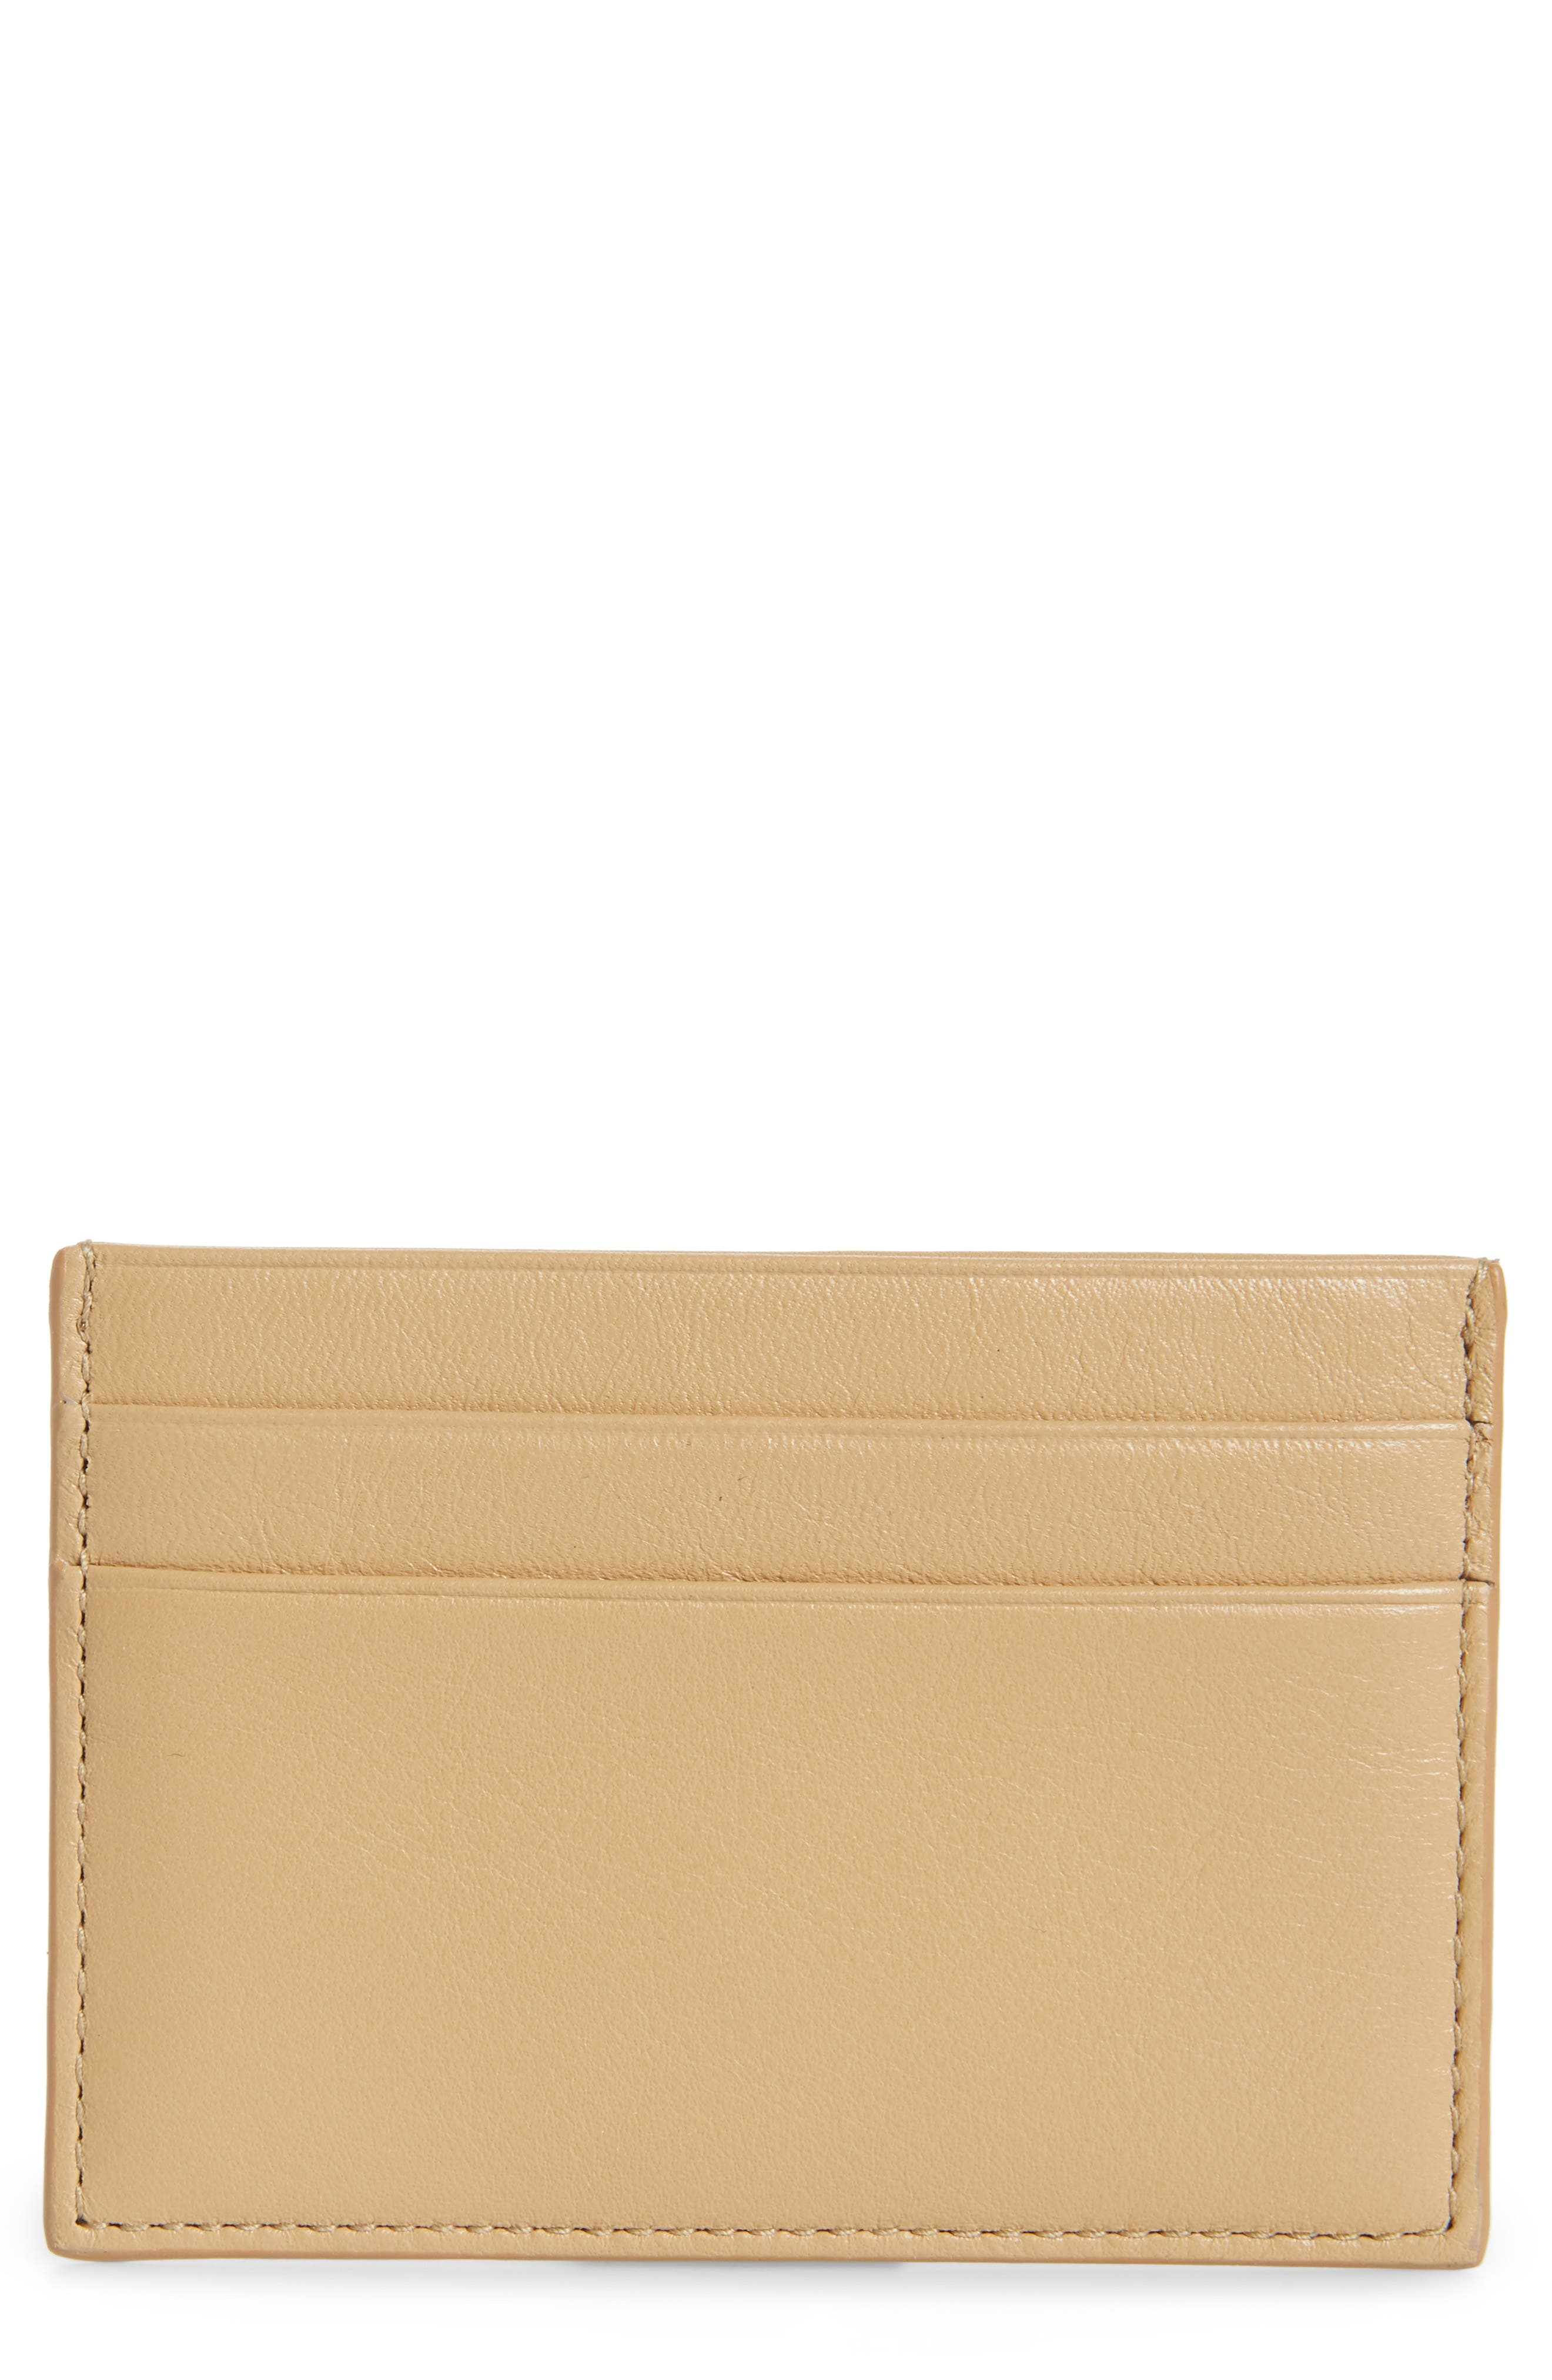 COMMON PROJECTS, Nappa Leather Card Case, Main thumbnail 1, color, 250